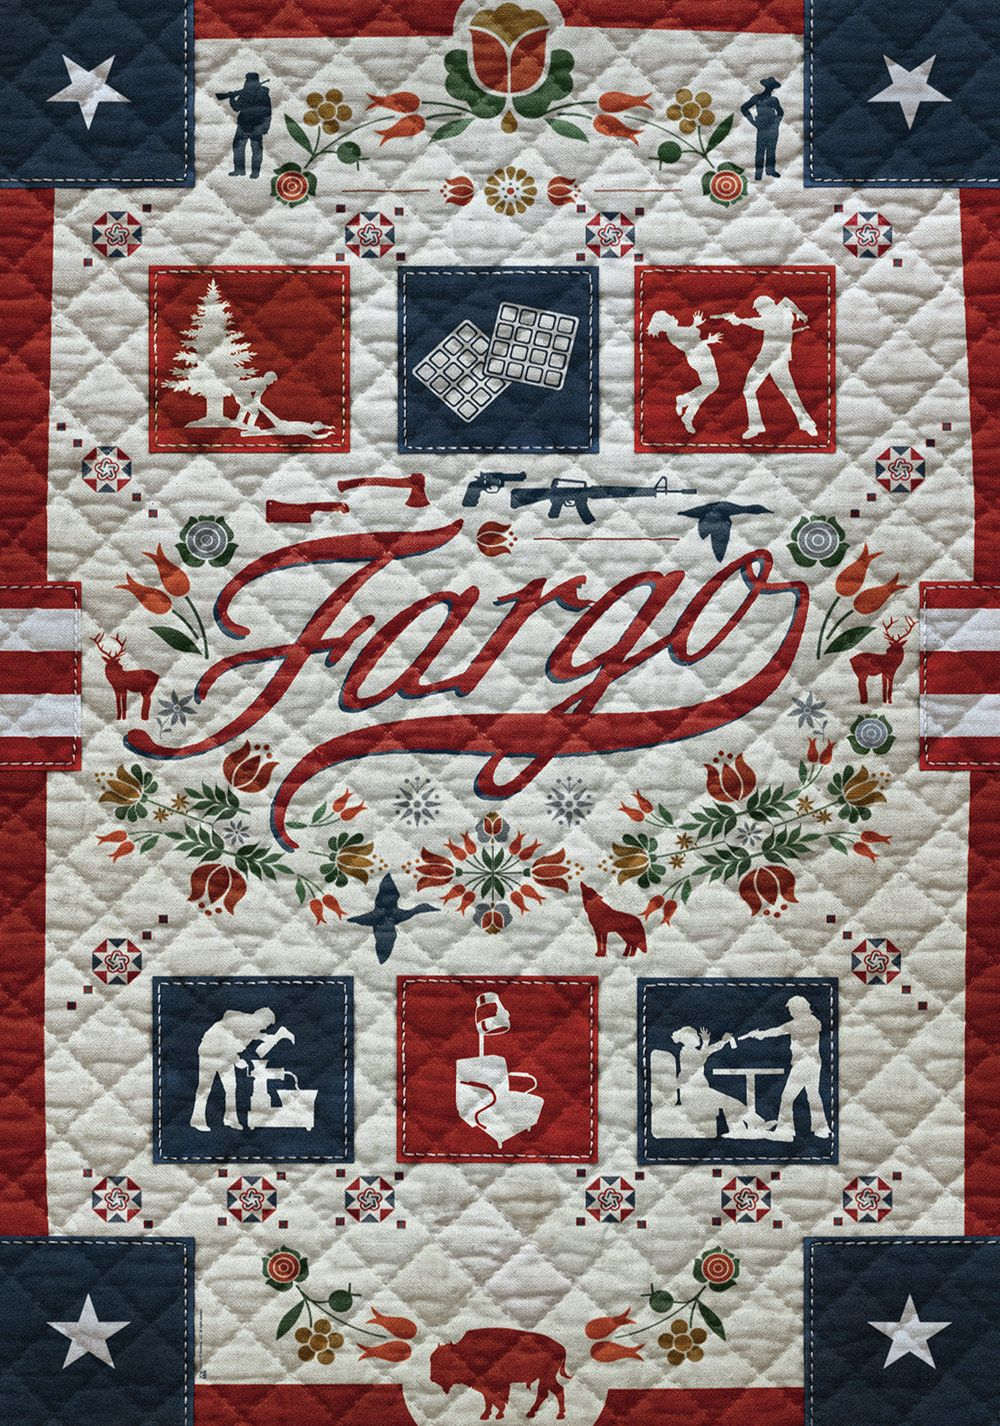 Fargo tv series quilt | Fargo | Pinterest | Fargo tv series and TVs : quilting tv shows - Adamdwight.com